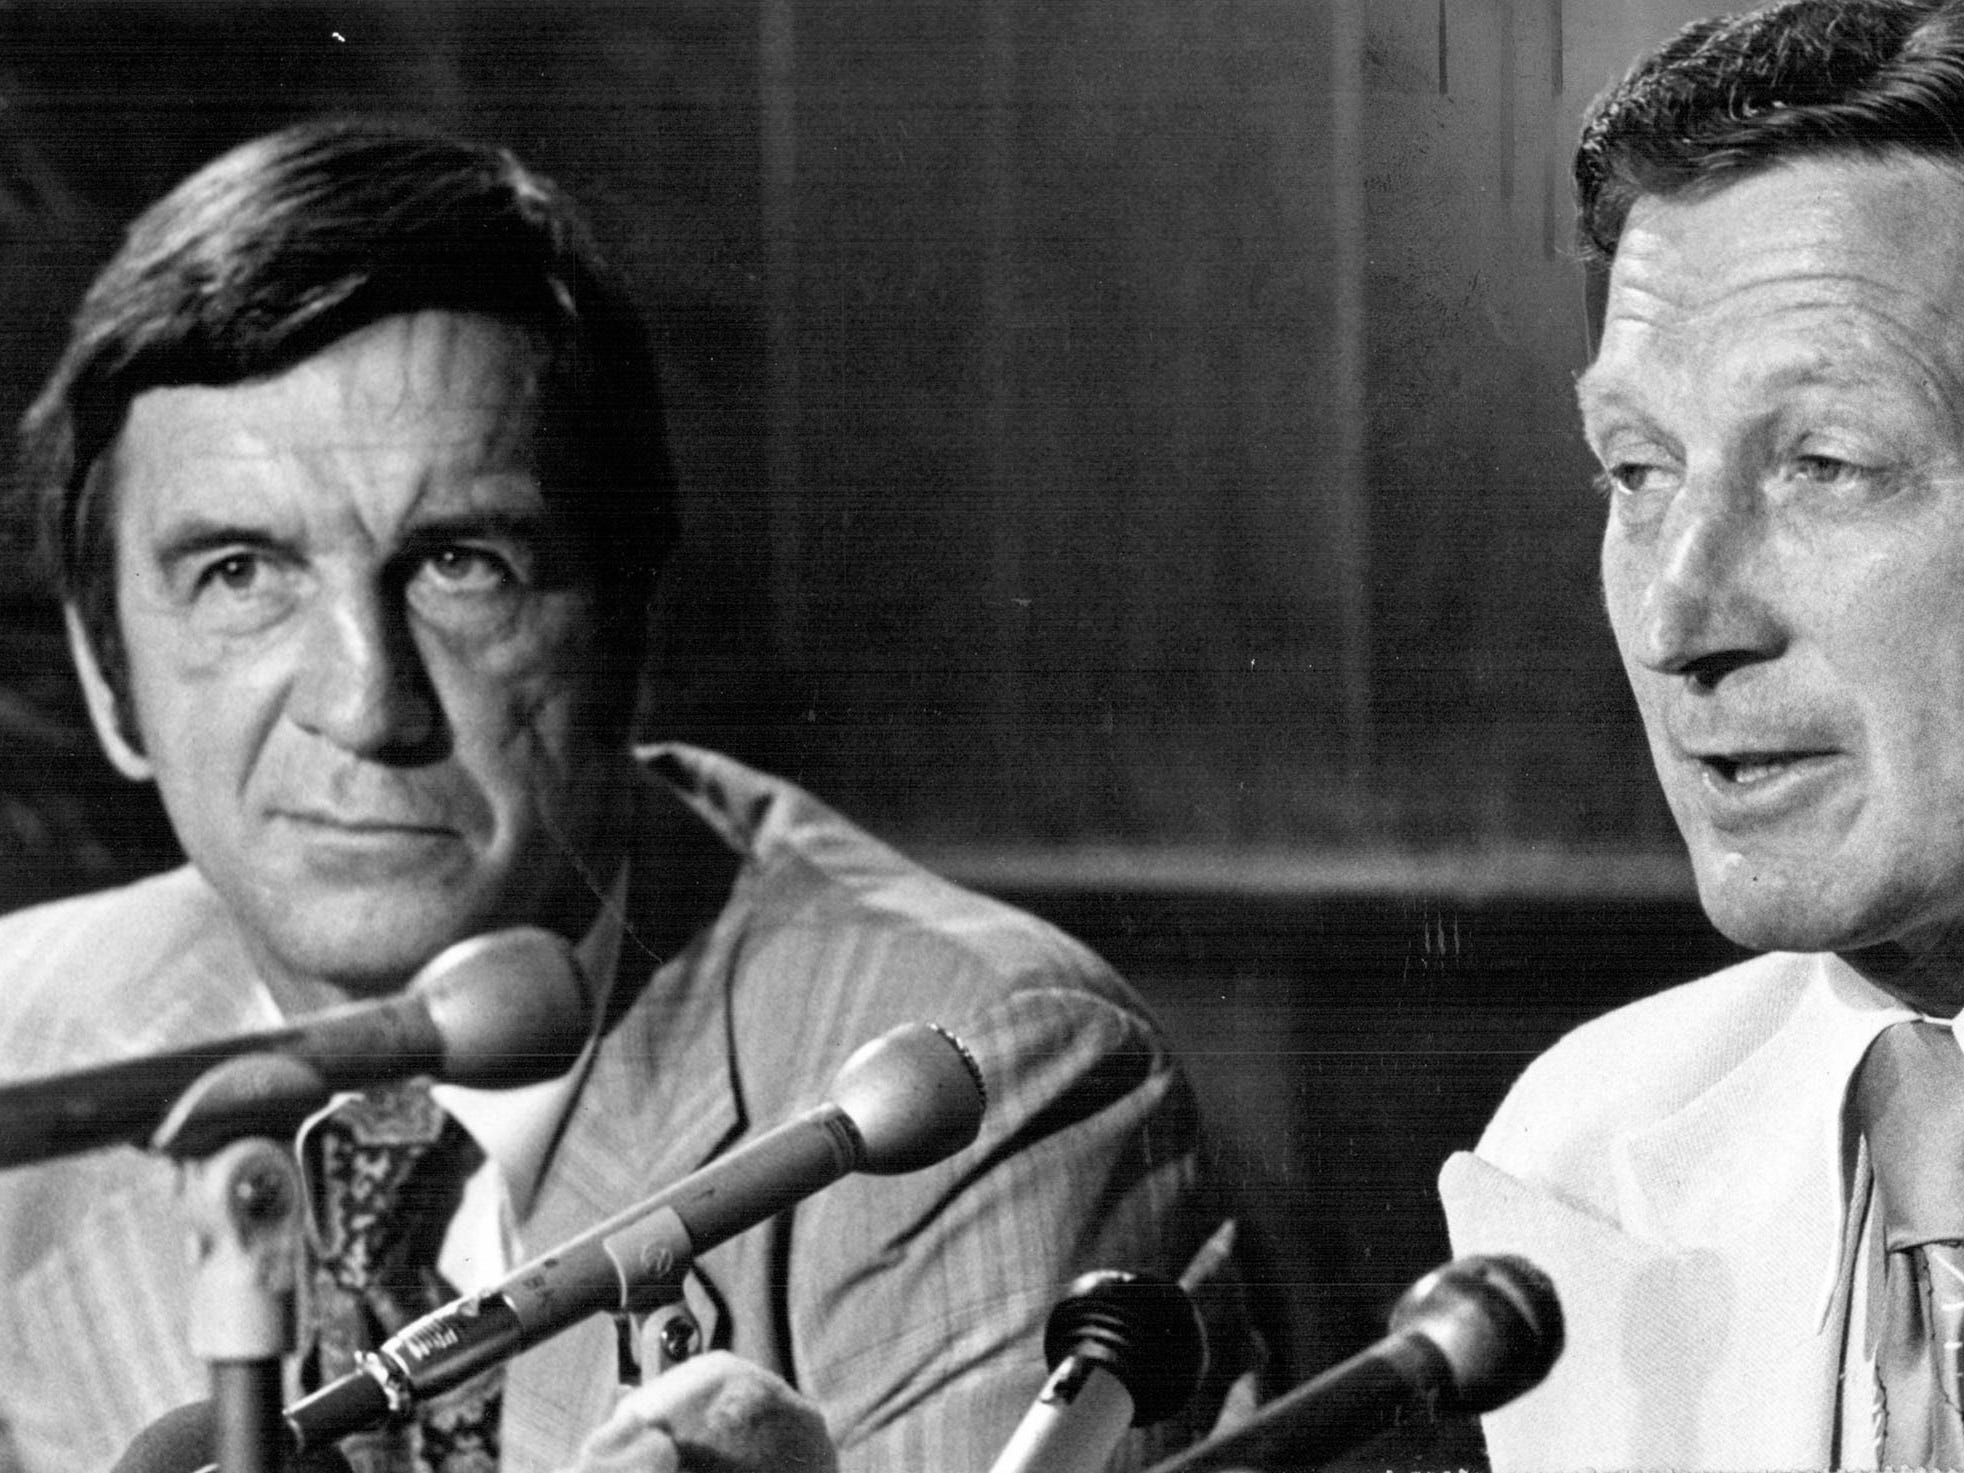 In June 19777, Detroit Red Wings General Manager Ted Lindsay, left, listens as Bobby Kromm, coach of the WHA Winnipeg Jets for the past two seasons, responds to questions at a press conference in Detroit.  Kromm was named as the new coach of the Red Wings by Lindsay.